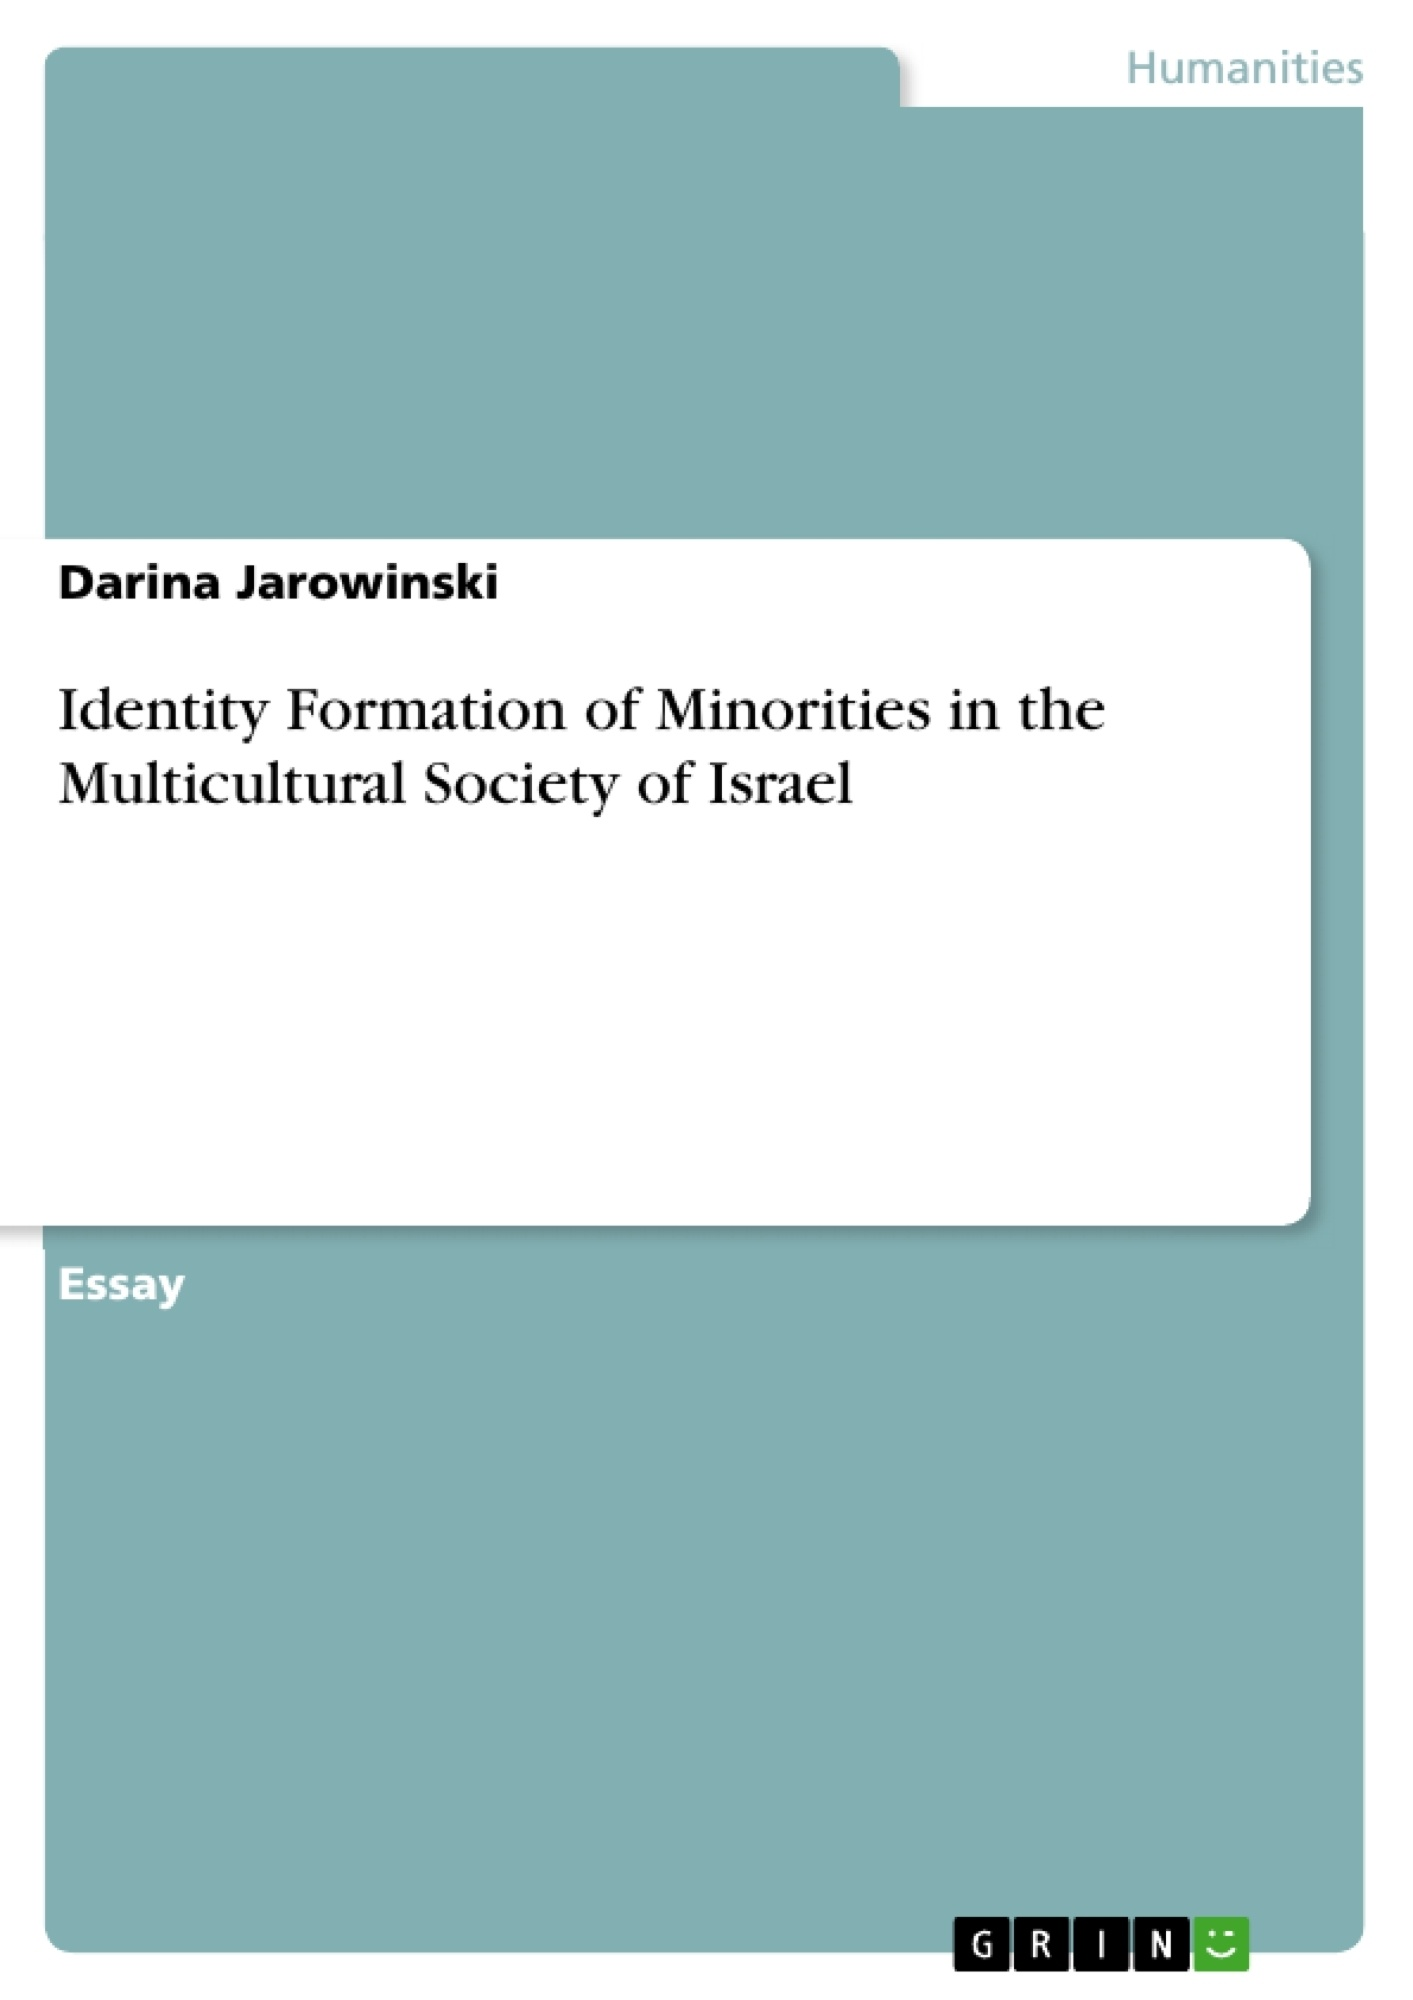 multicultural society essay